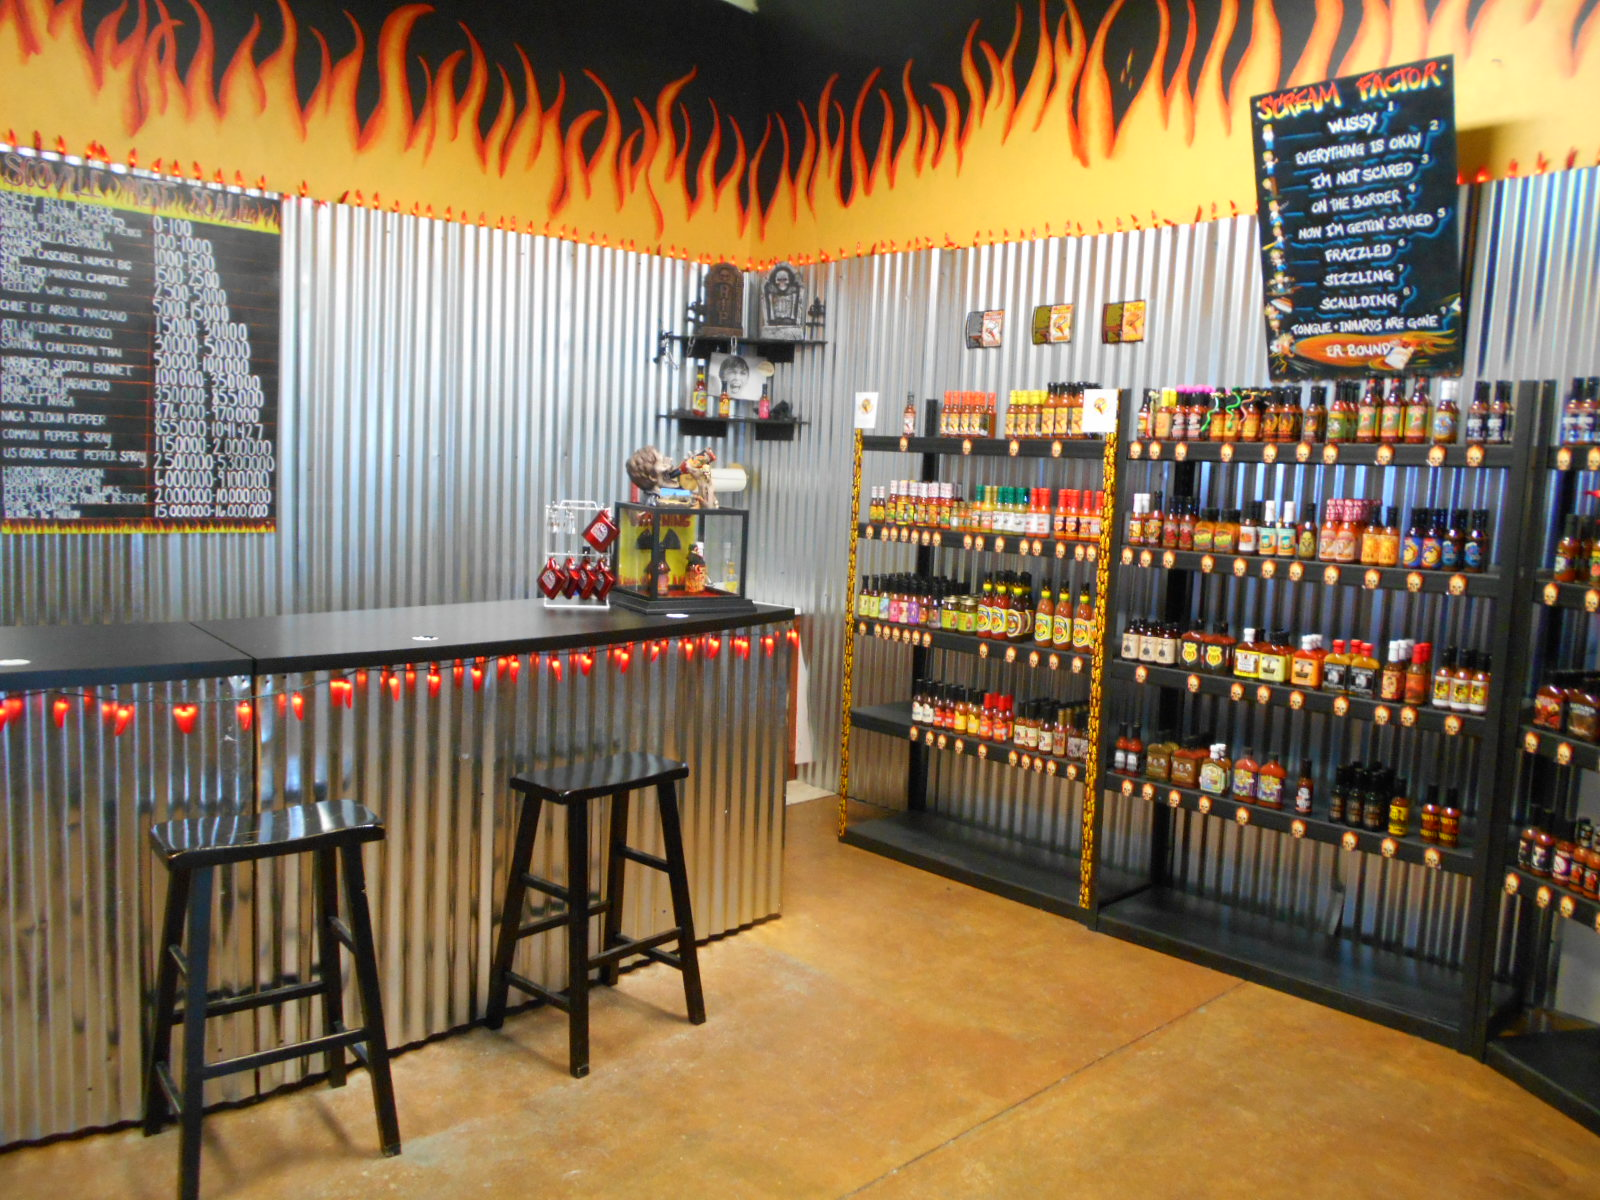 THE hot sauce bar!